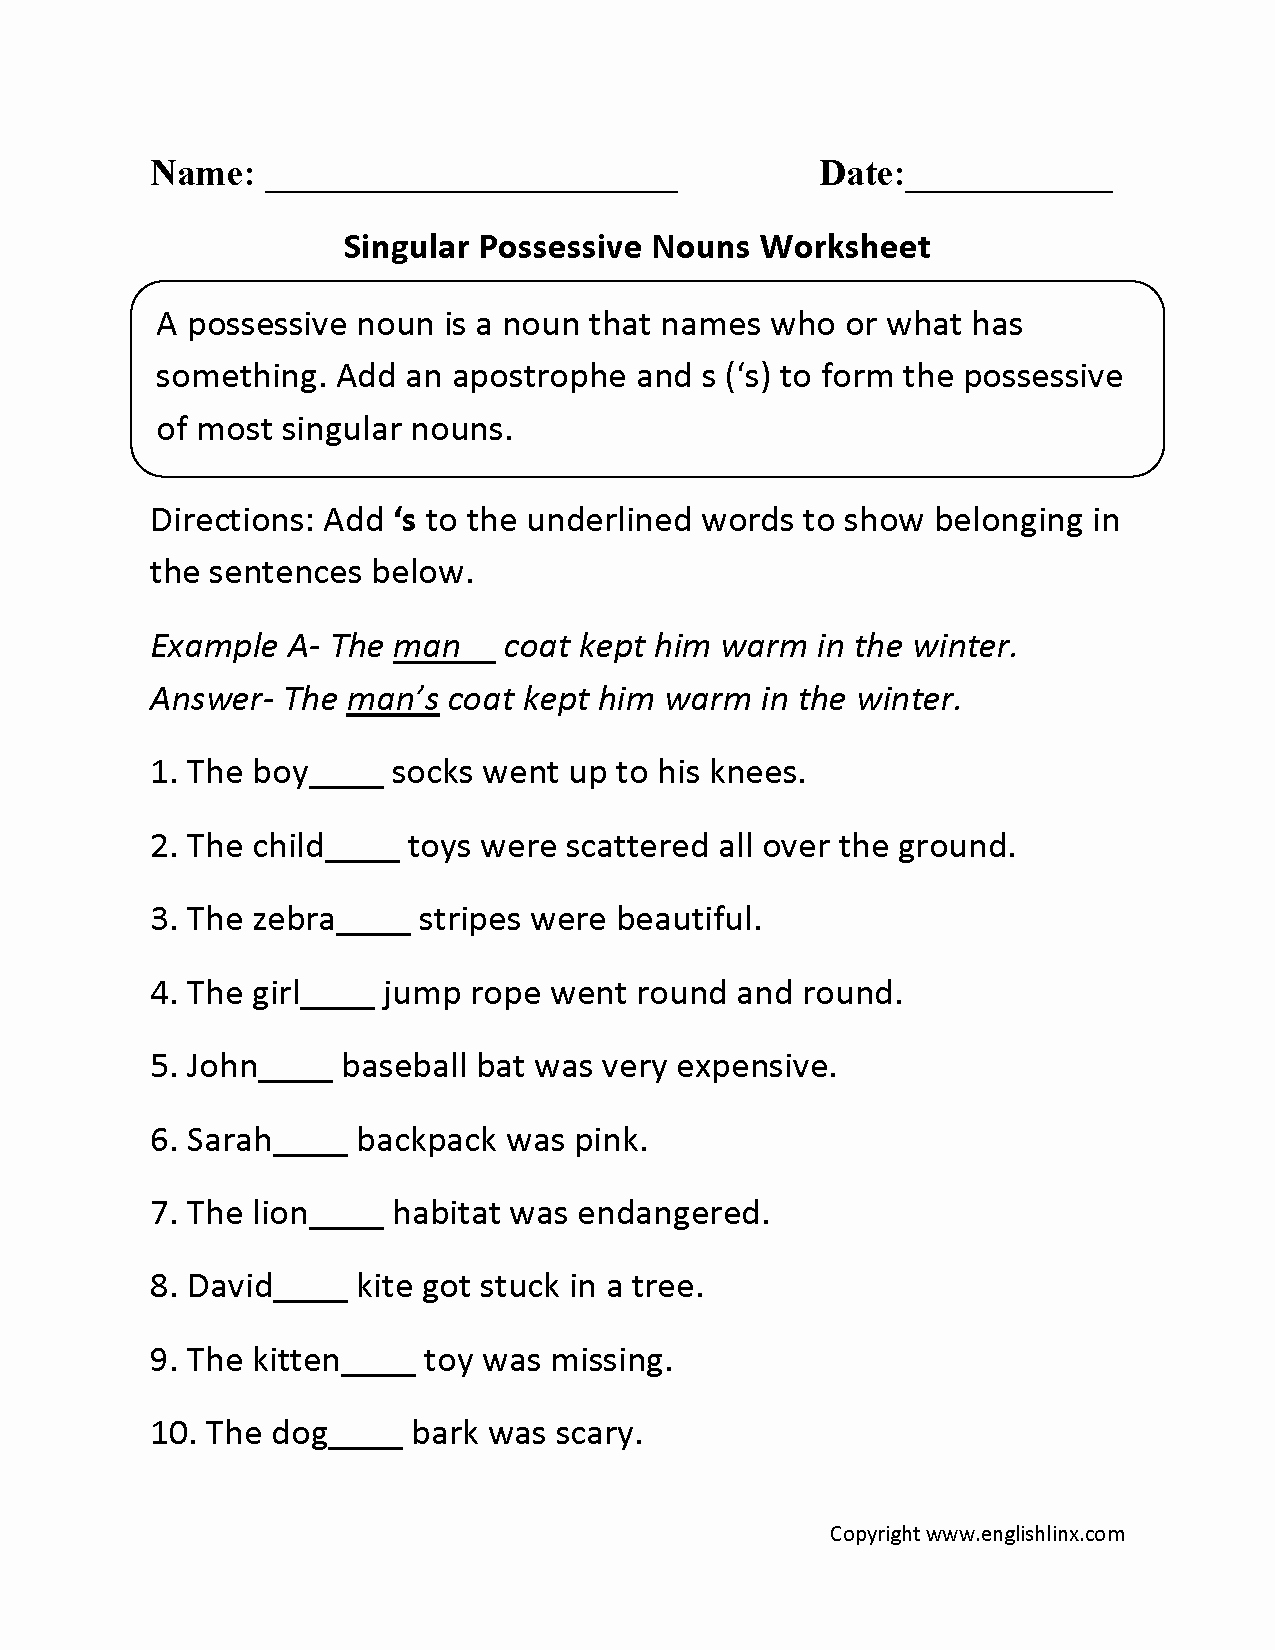 Singular Possessive Nouns Worksheet Elegant Singular Possessive Nouns Worksheets